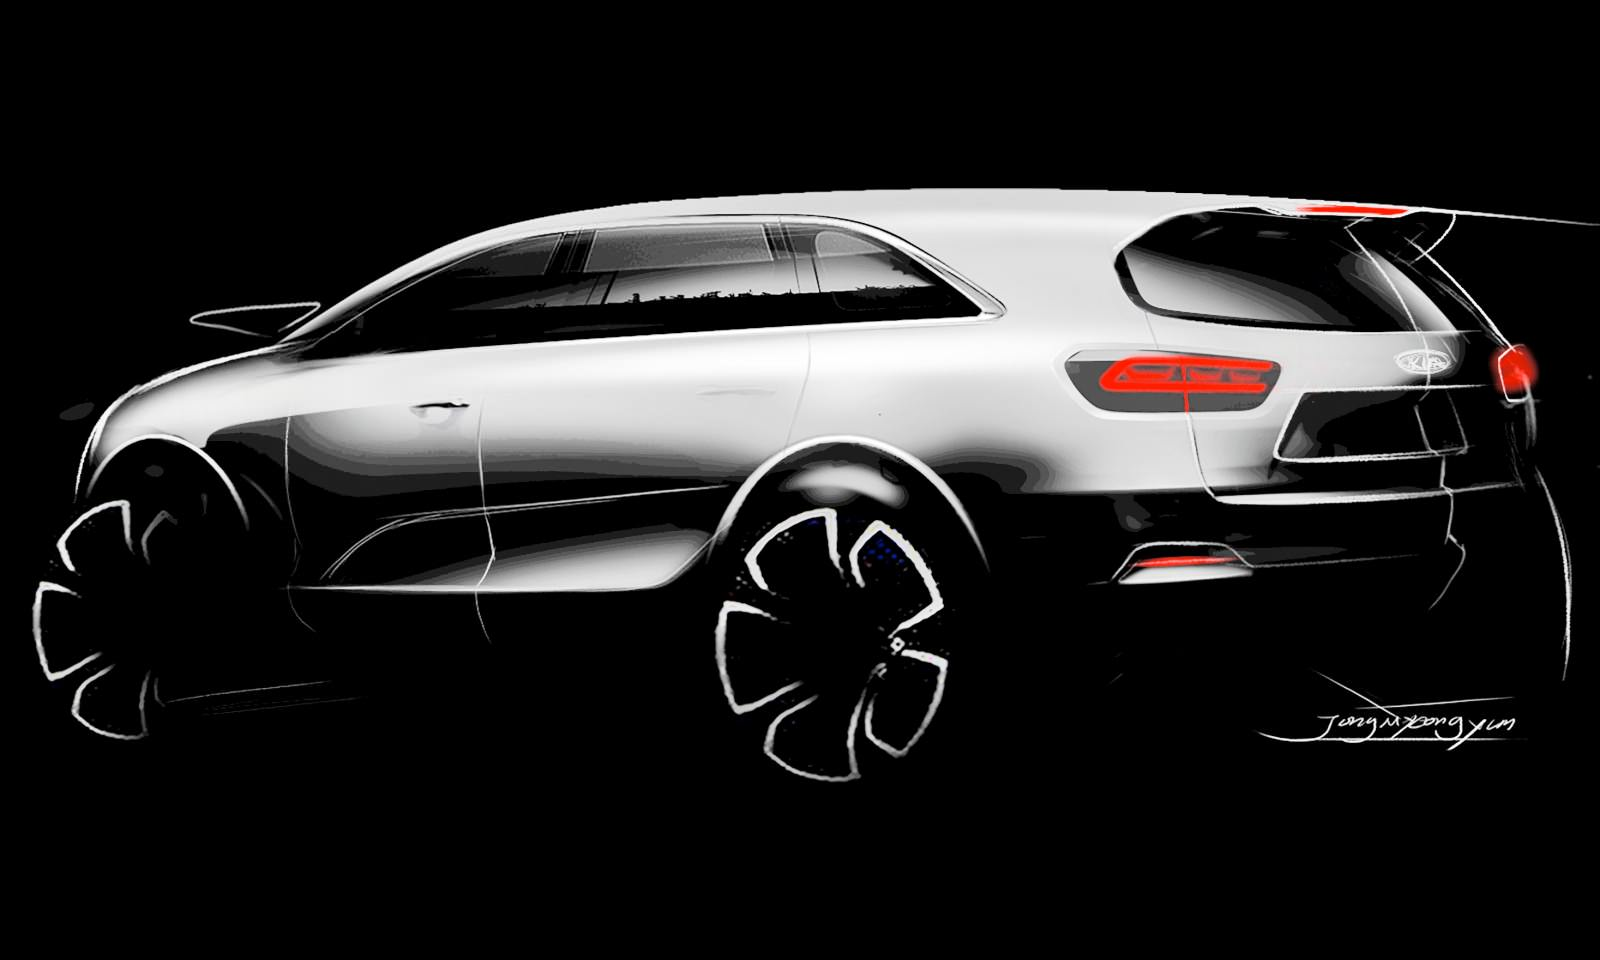 Kia-to-unveil-all-new-Sorento-at-the-2014-Paris-Motor-Show-572281